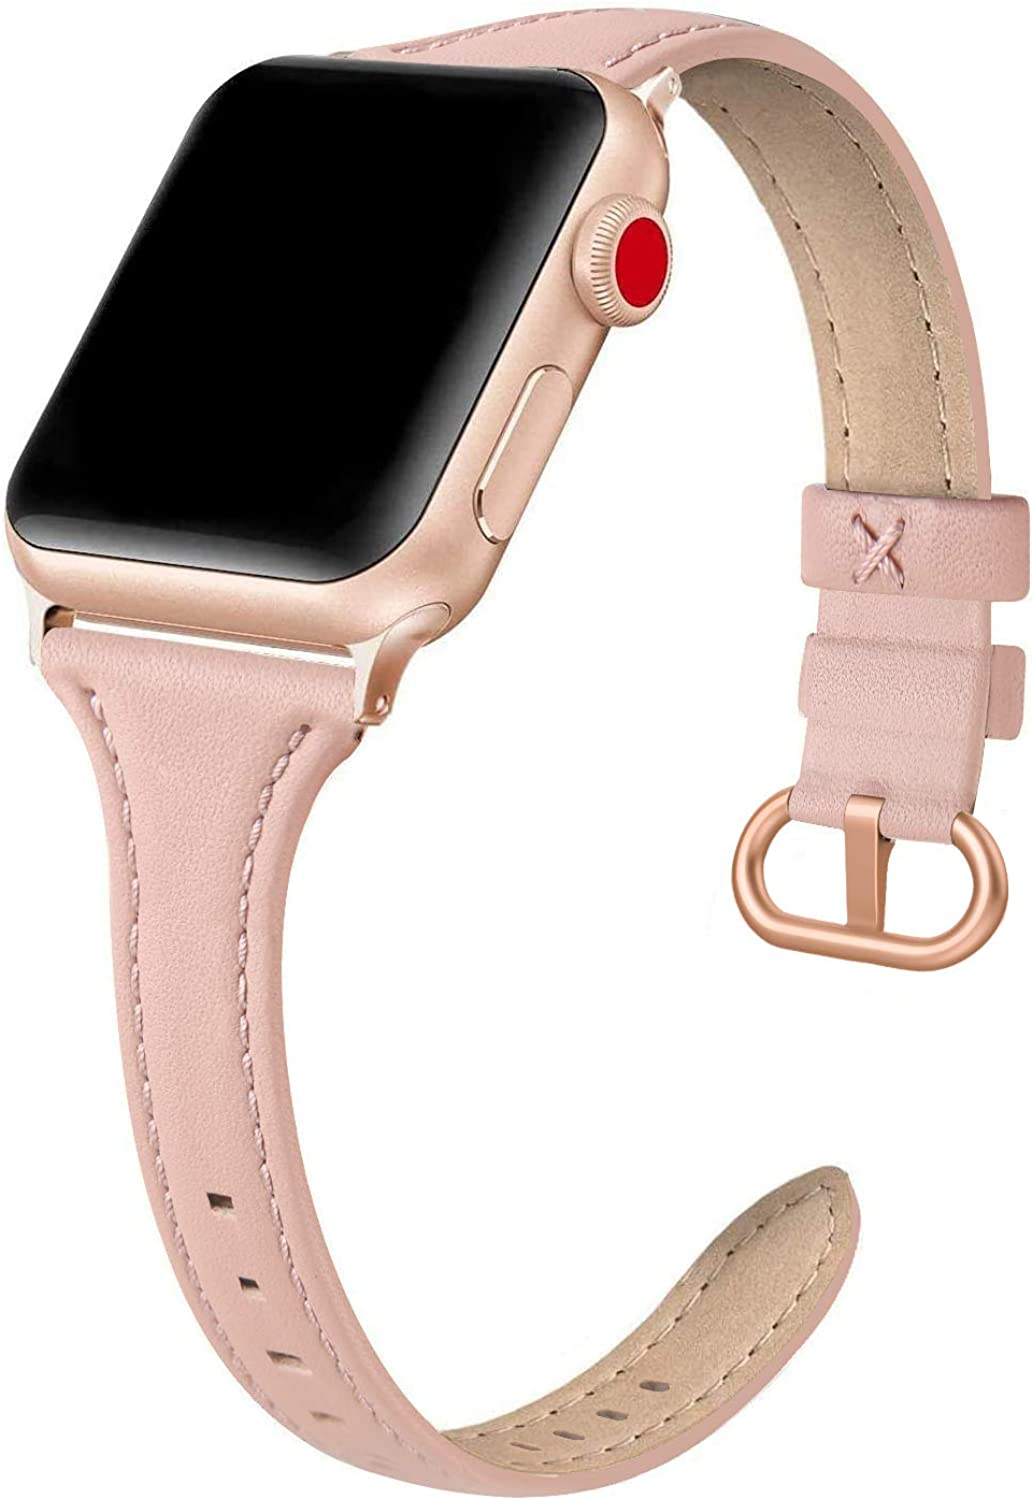 EDIMENS Leather Bands Compatible with Apple Watch 38mm 40mm Band Women, Slim Thin Genuine Leather Band Compatible for iWatch Apple Watch Series 6, 5, 4, 3, 2, 1, SE, Sport & Edition Women